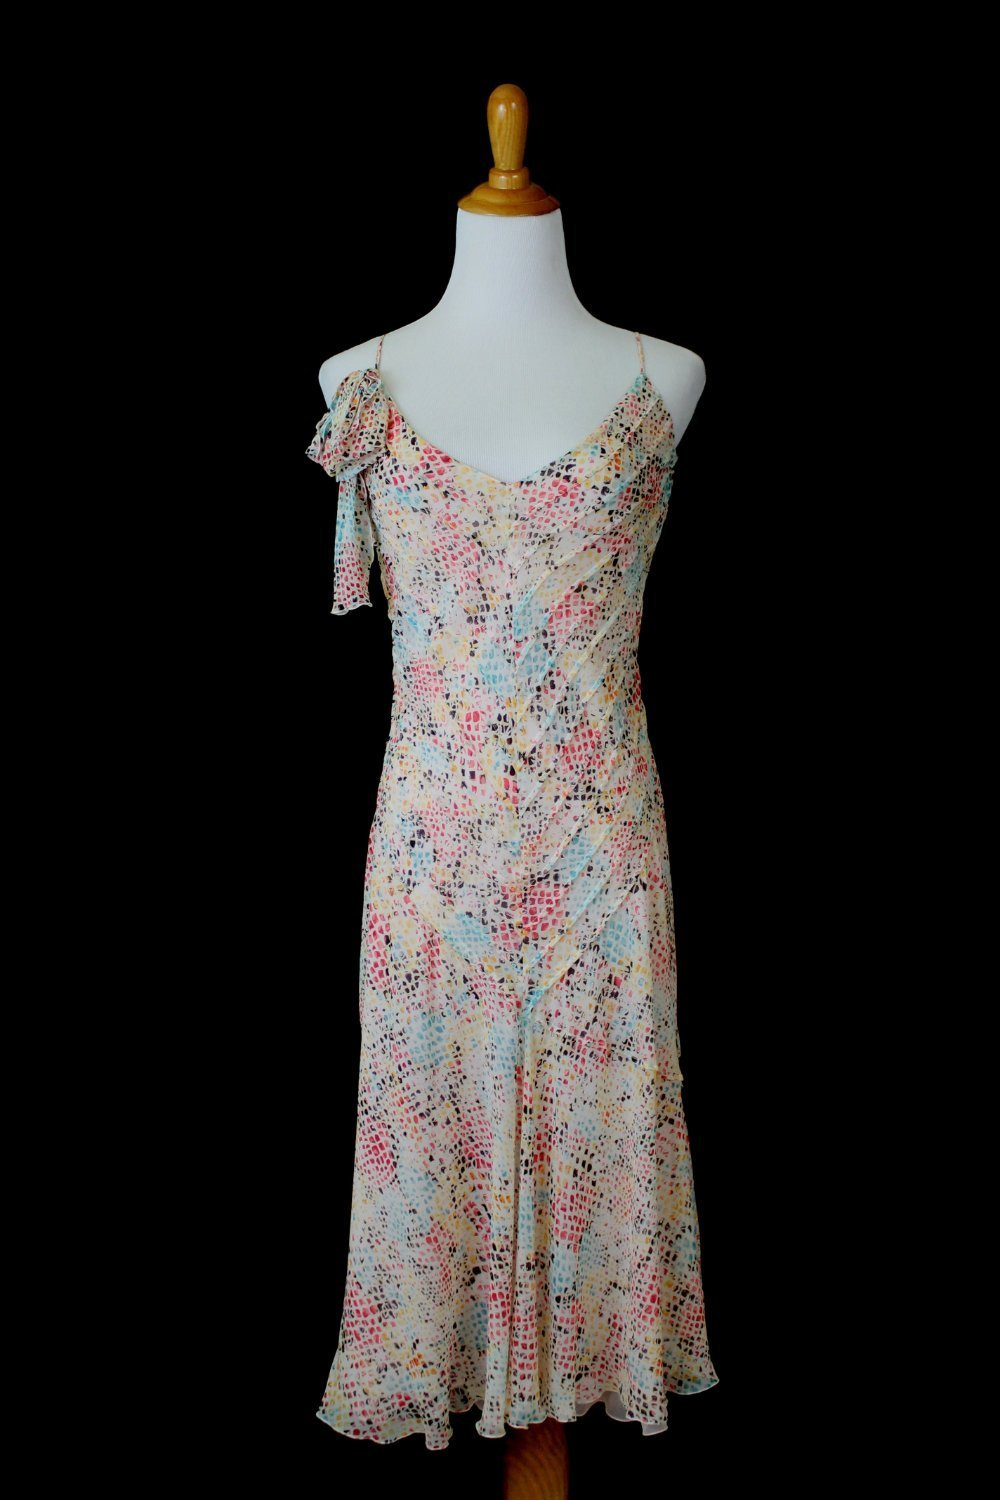 Sonia Rykiel Ethereal 1920's Gatsby Inspired Summer Silk Dress France 36 USA 4 6